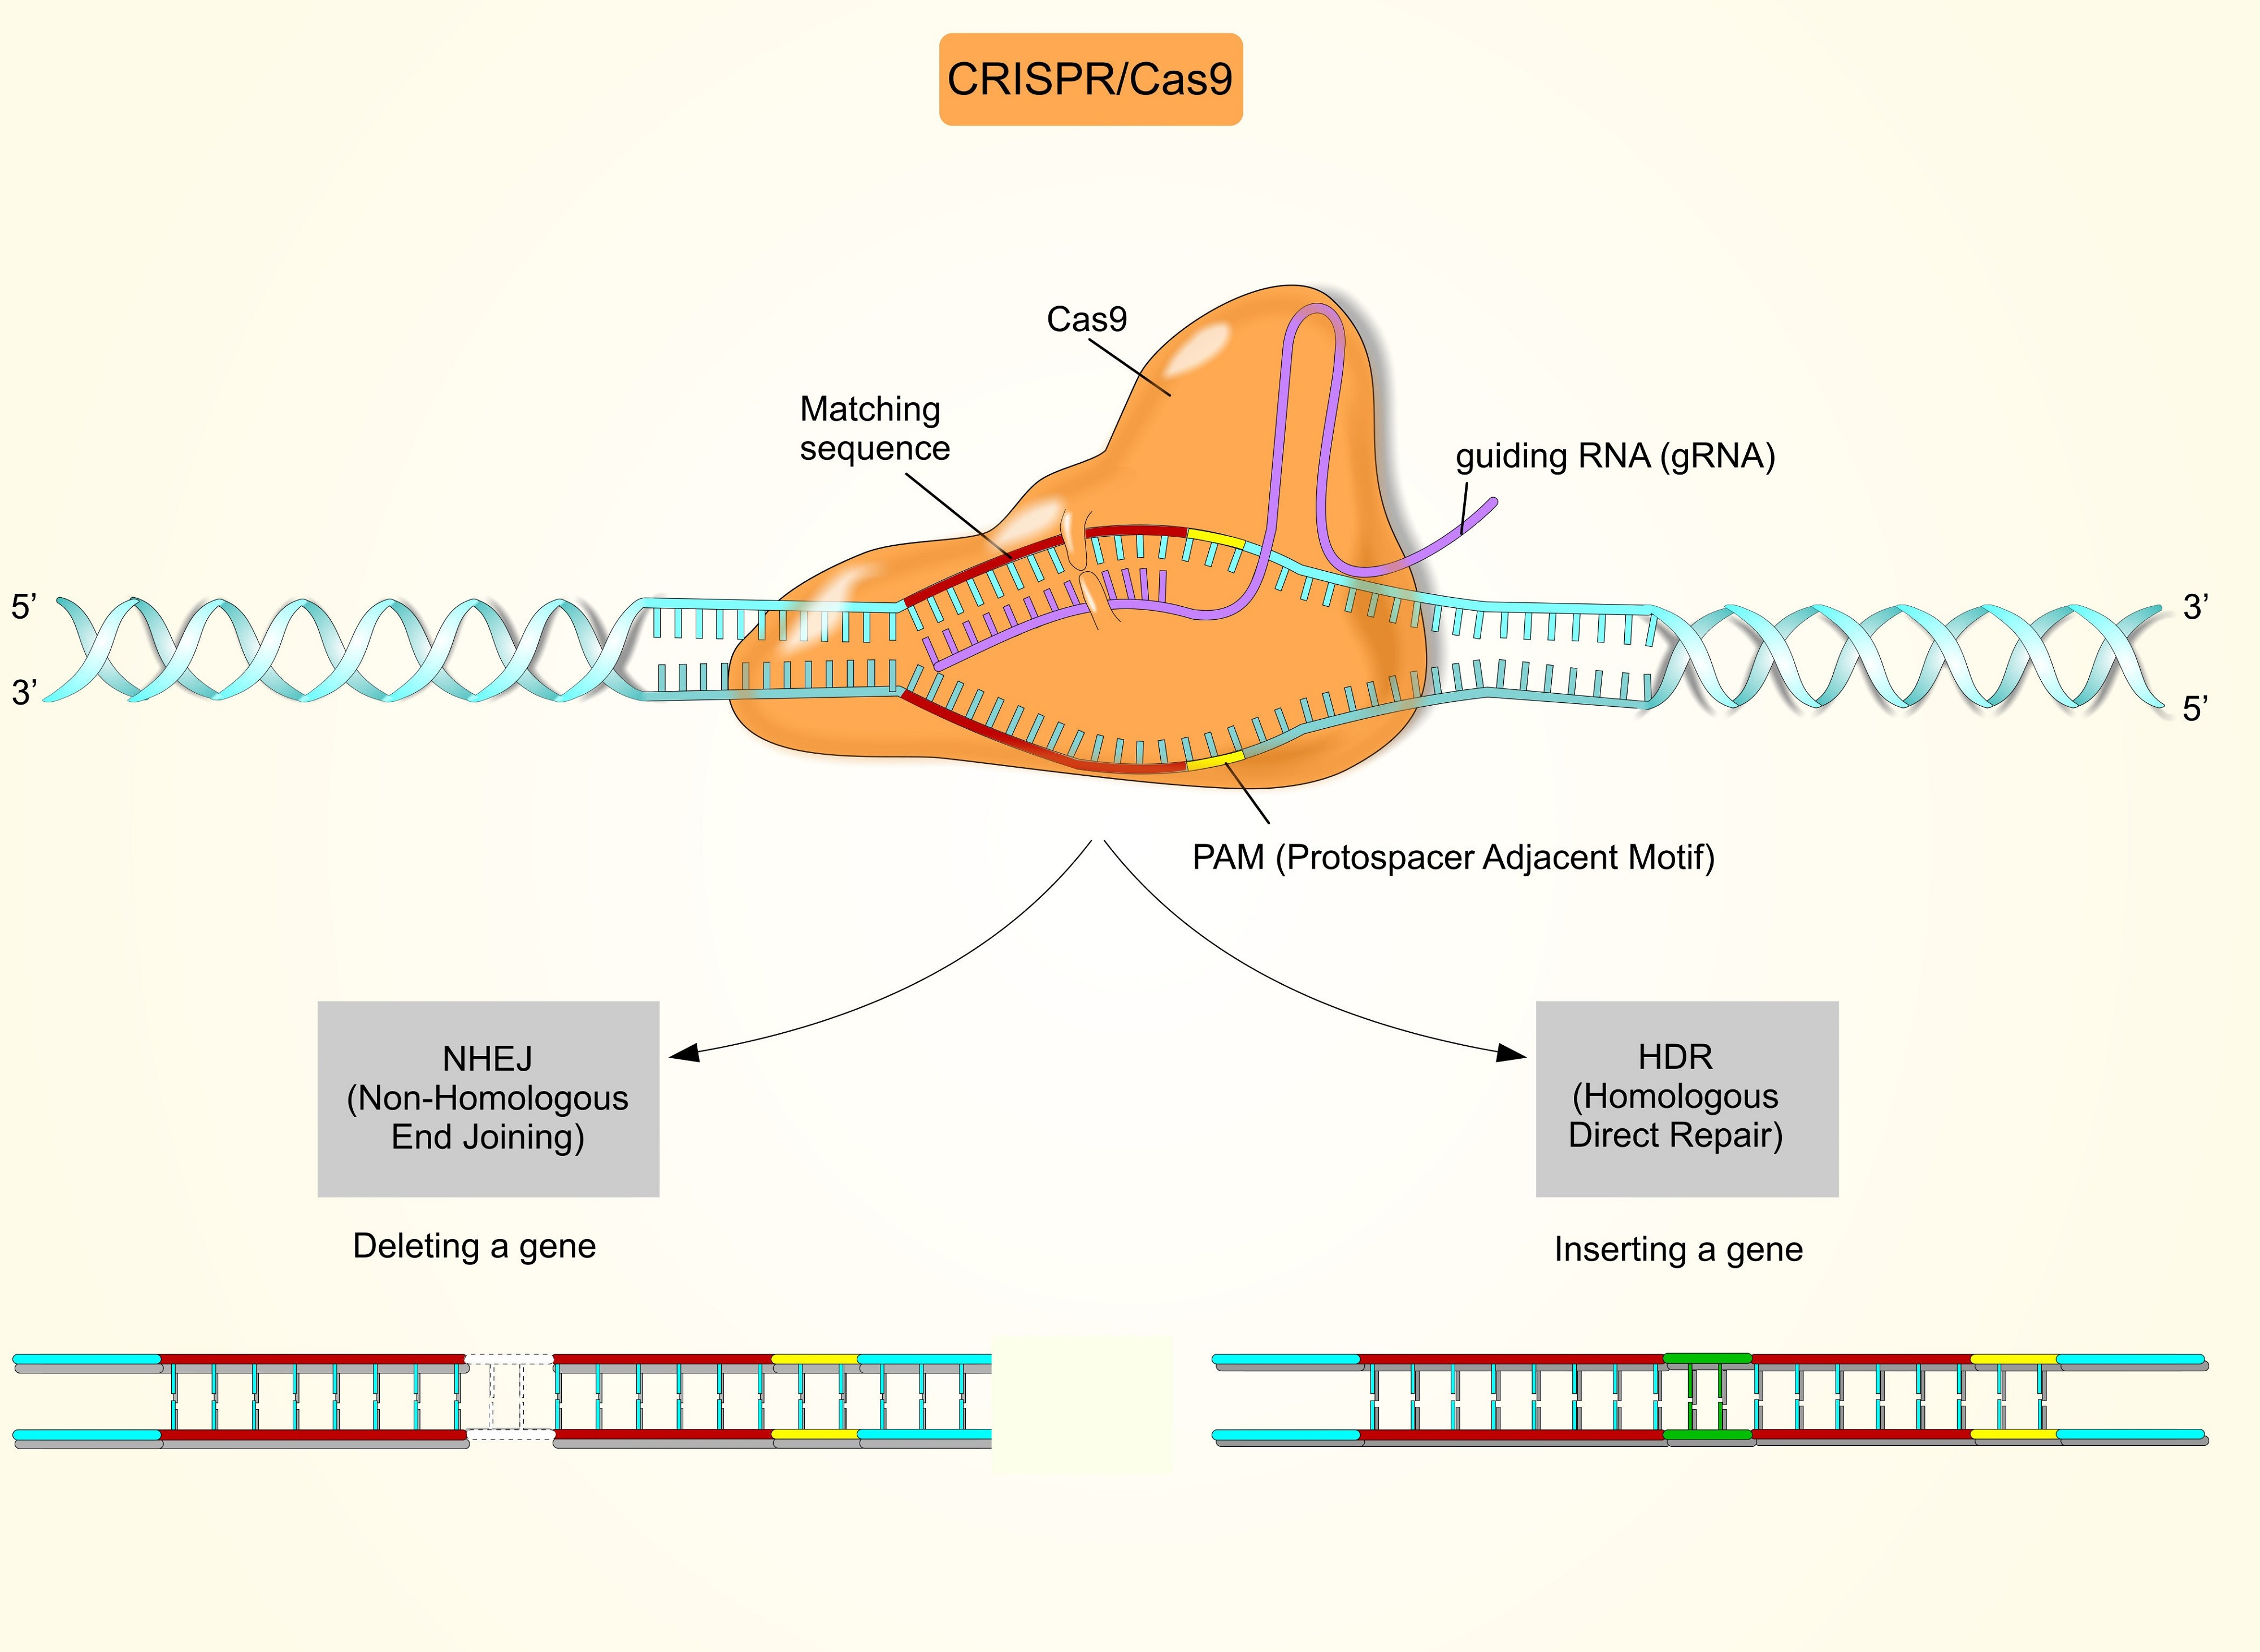 How digital PCR can improve CRISPR gene editing (with examples)